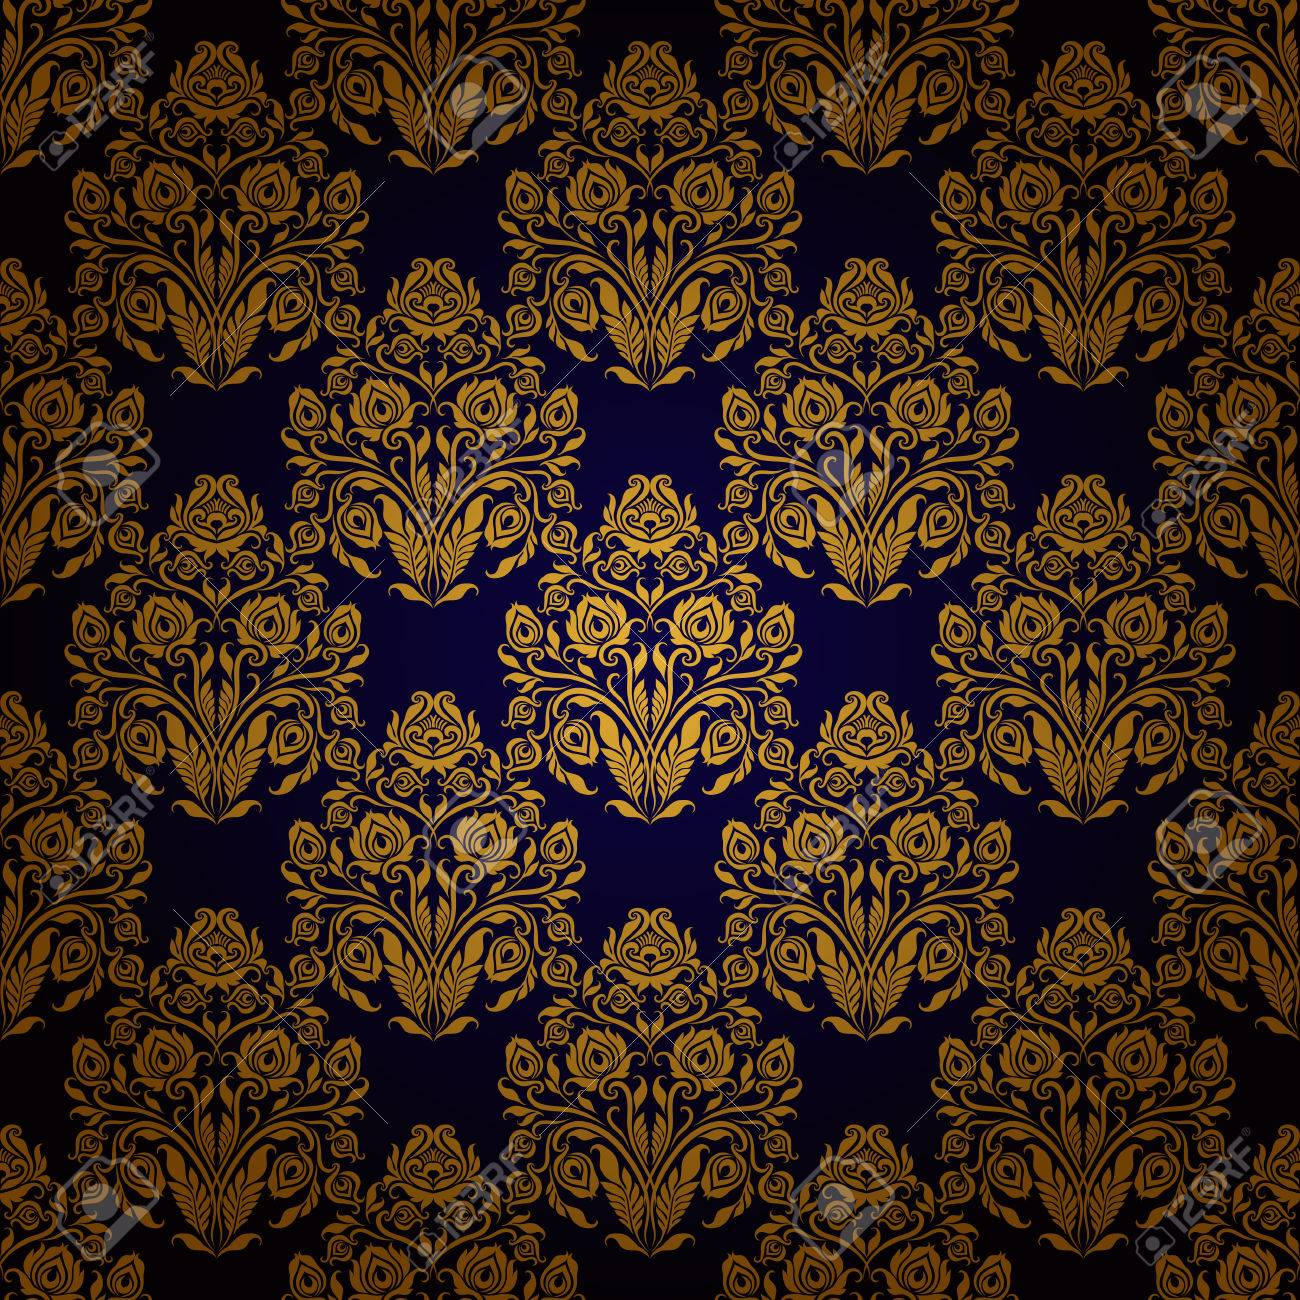 Damask Seamless Floral Pattern Royal Wallpaper Ornaments On A Dark Background Stock Vector